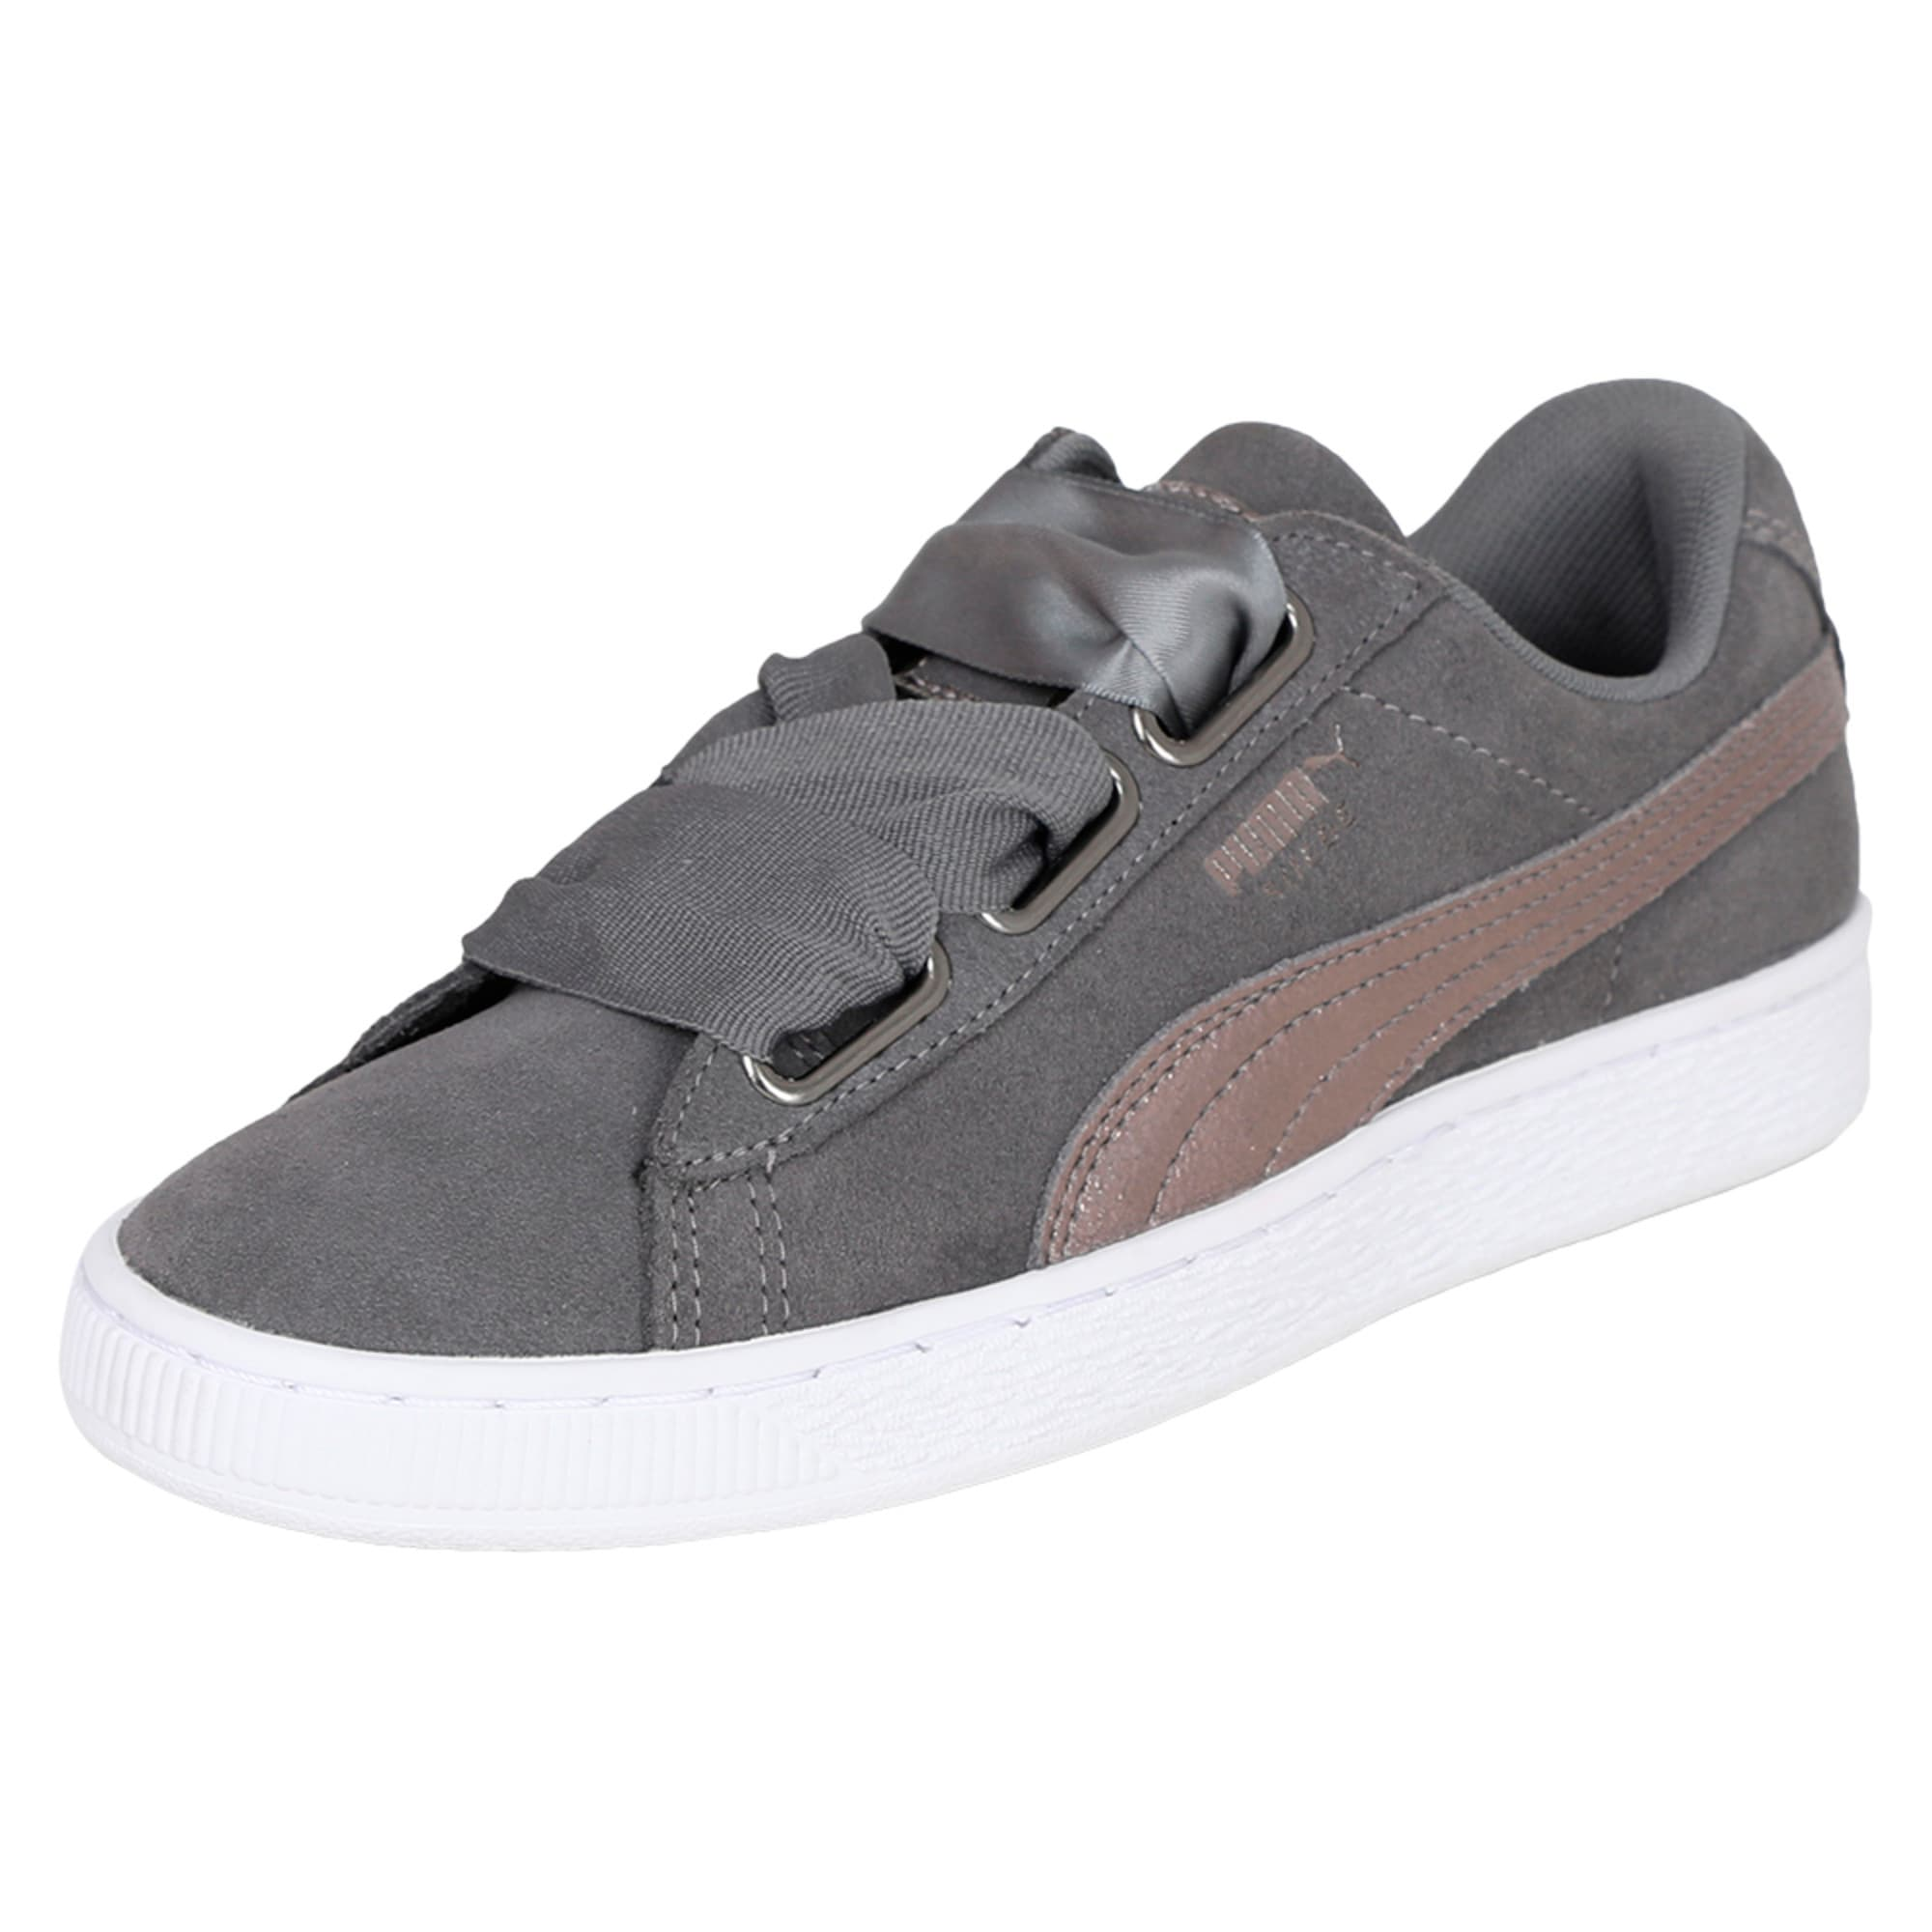 Thumbnail 1 of Suede Heart LunaLux Women's Trainers, Smoked Pearl, medium-IND